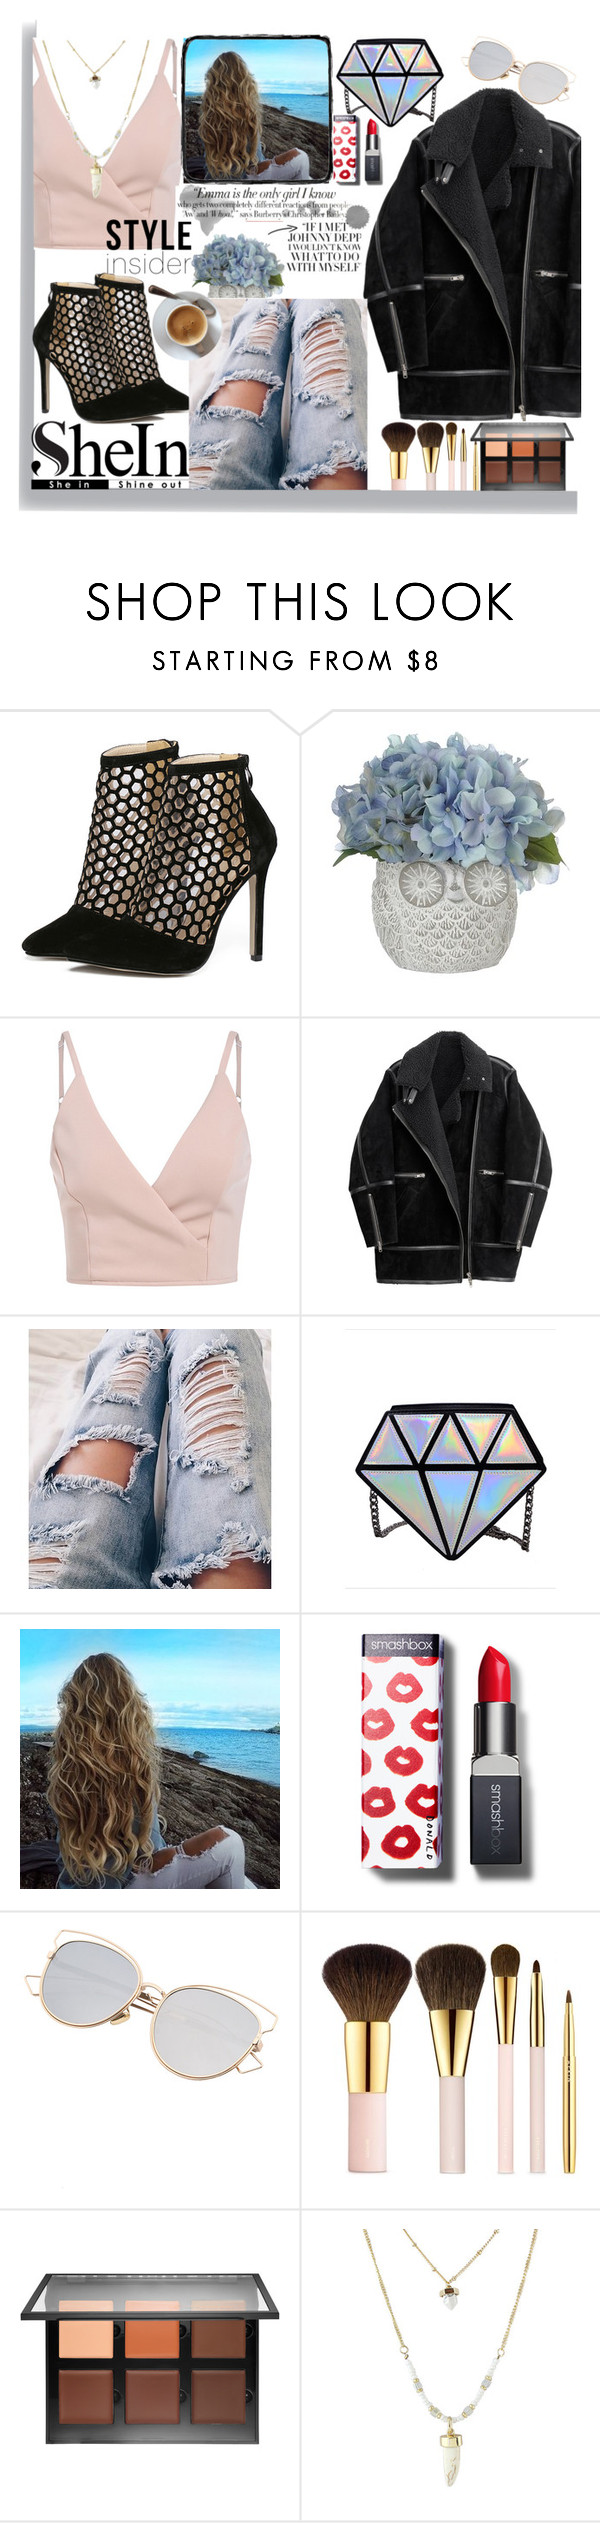 """#1 Shein"" by quynhhoa19 ❤ liked on Polyvore featuring H&M, Smashbox, AERIN, Anastasia Beverly Hills, Vanity Fair, contest, ootd and shein"